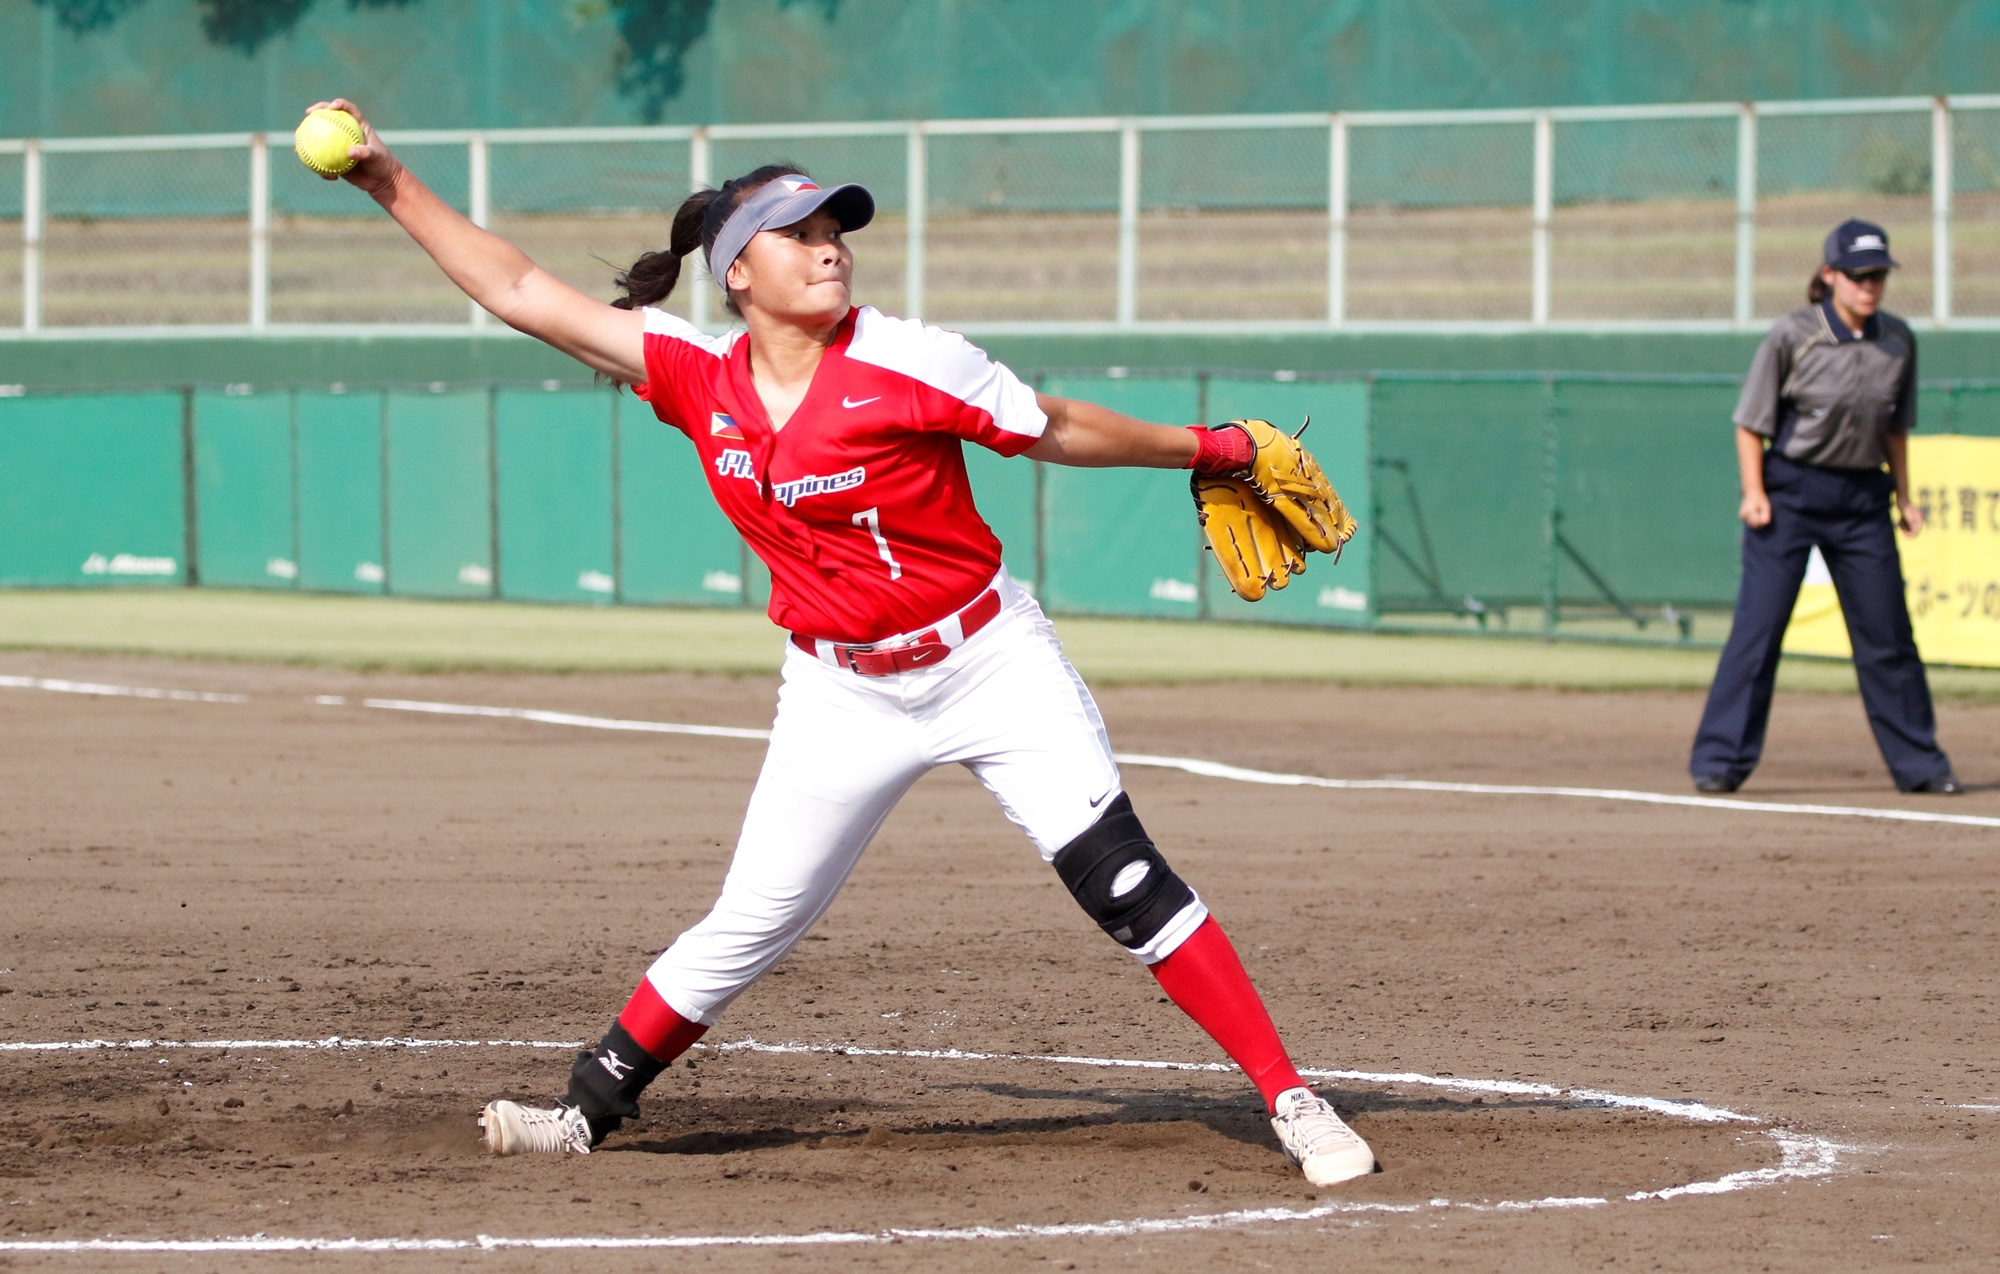 Sierra Lange pitcher for the Philippines in the debut game